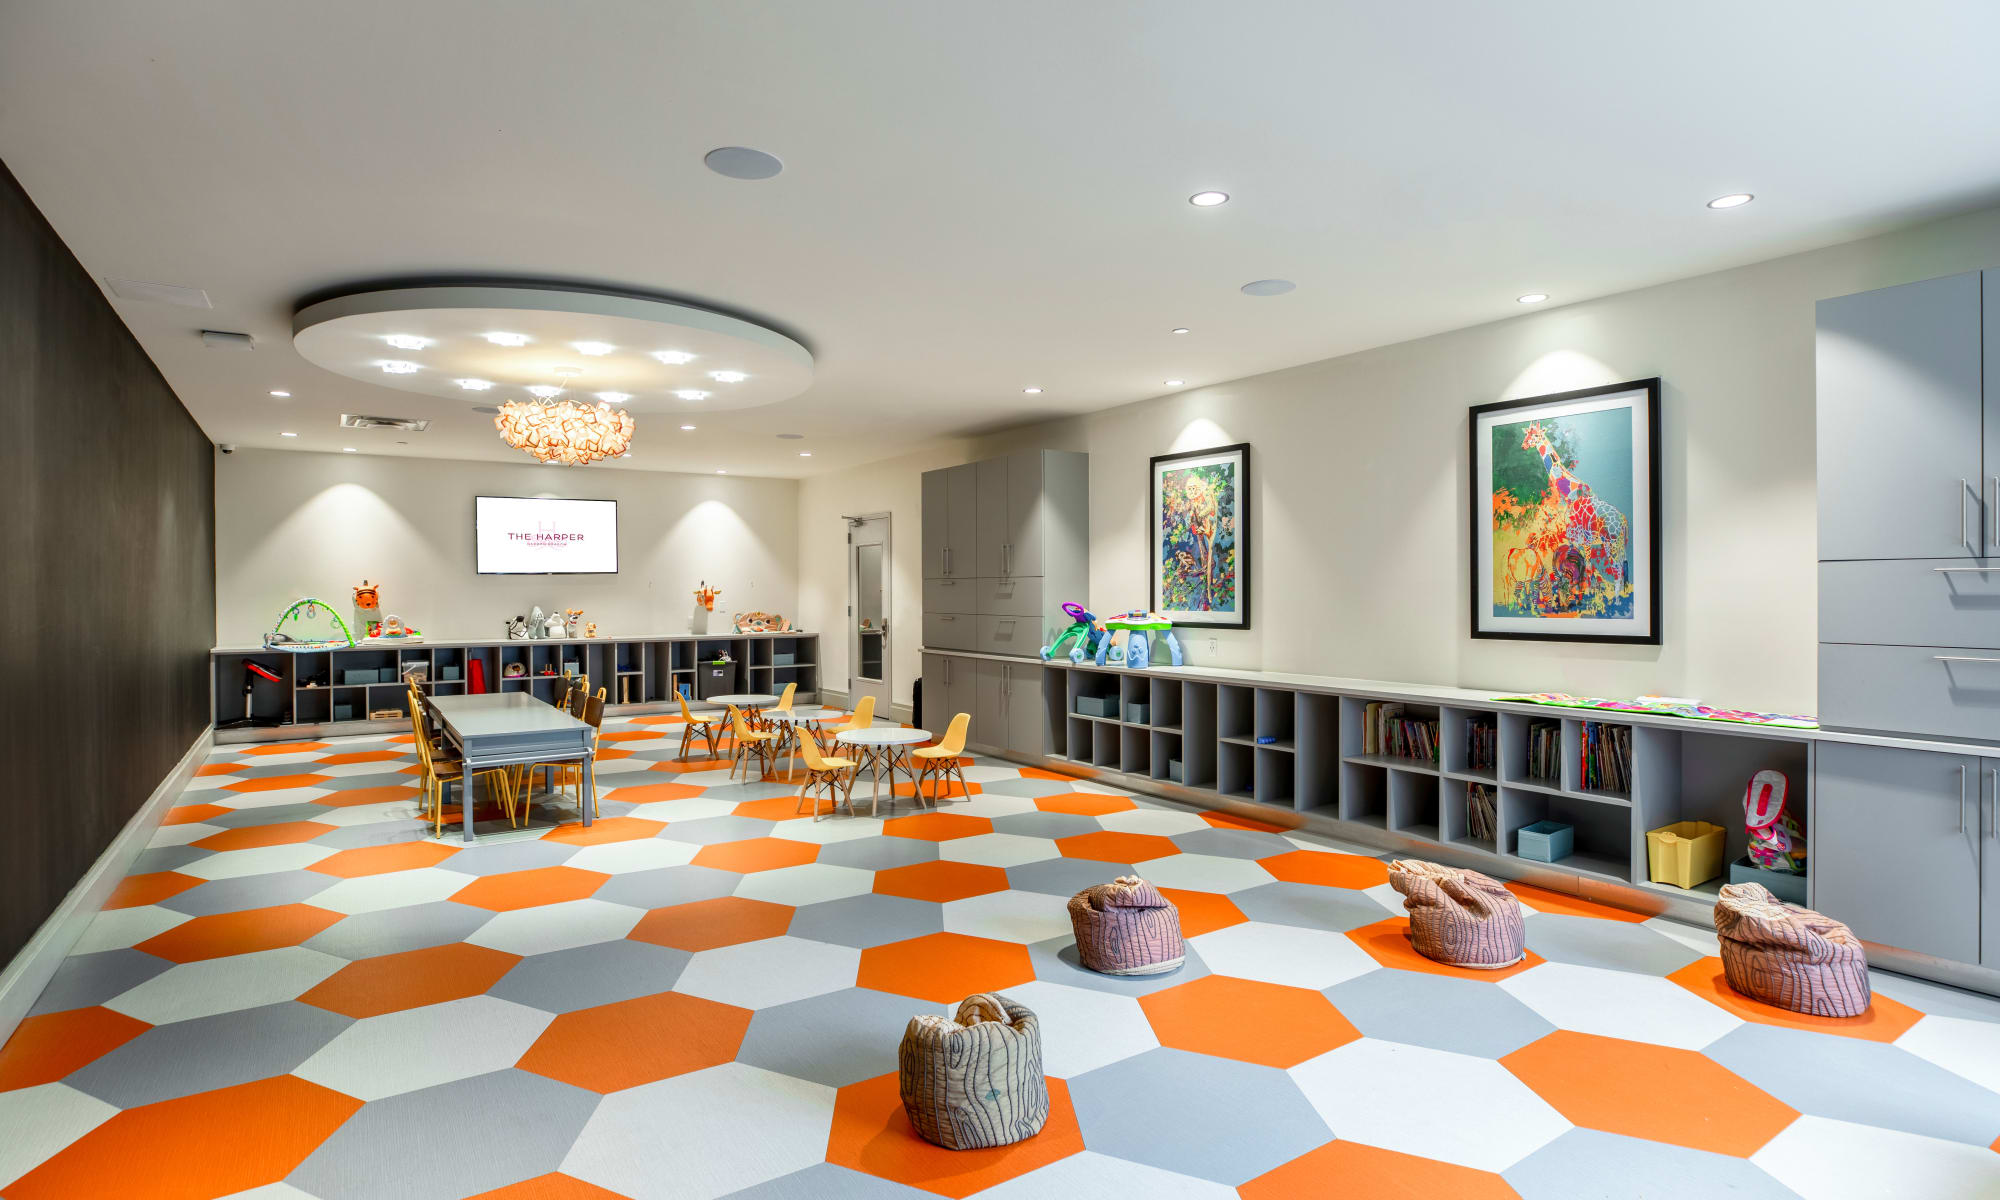 Playroom at The Harper at Harmon Meadow in Secaucus, New Jersey